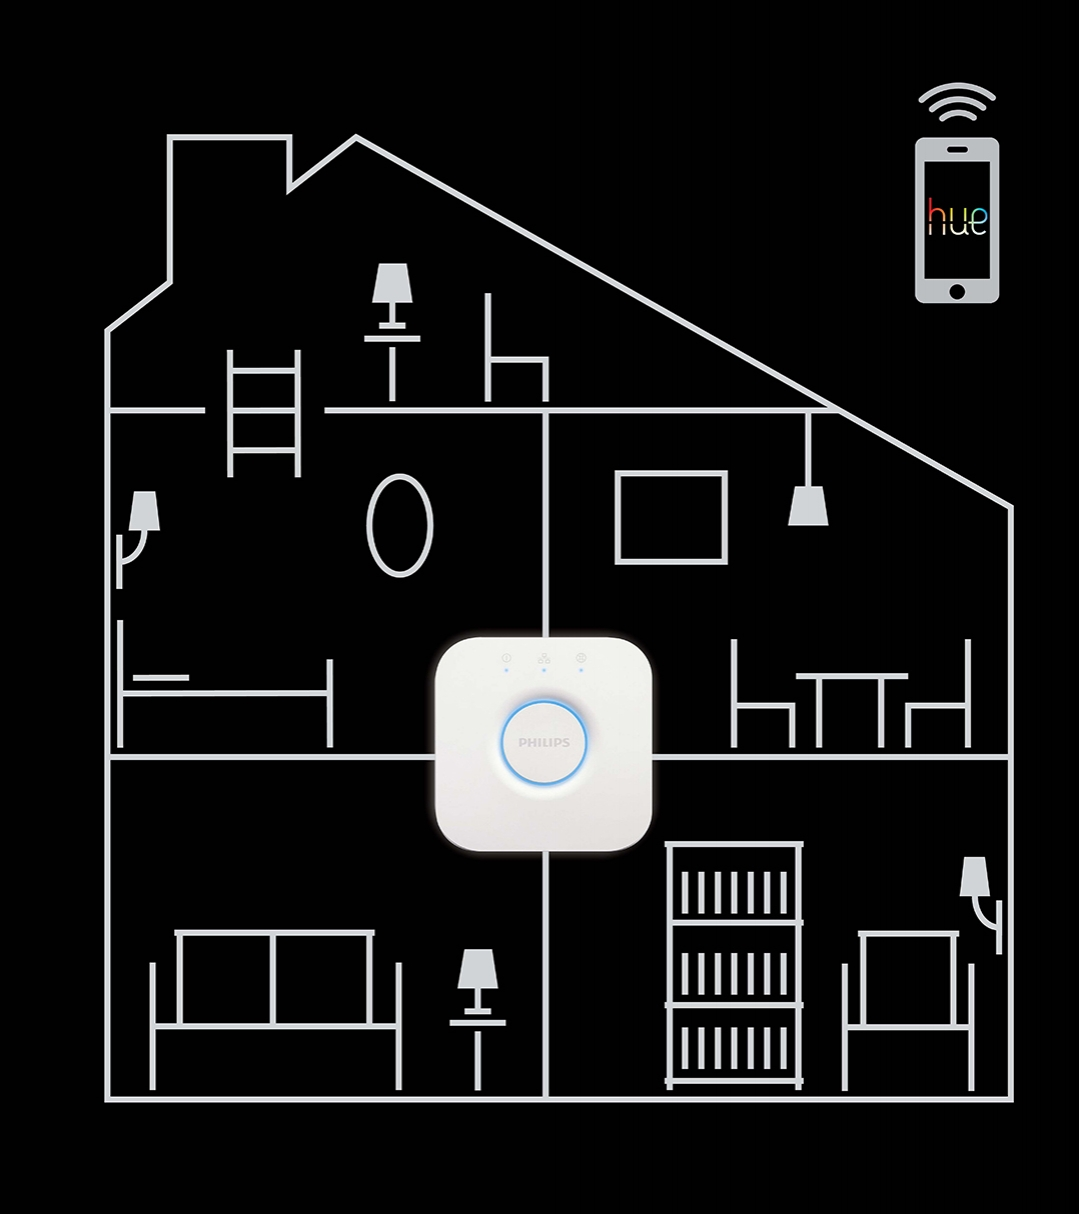 - Illustration to show how the Philips Bridge device is at the heart of a connected home.This was applied to retail displays and digital touch-points.